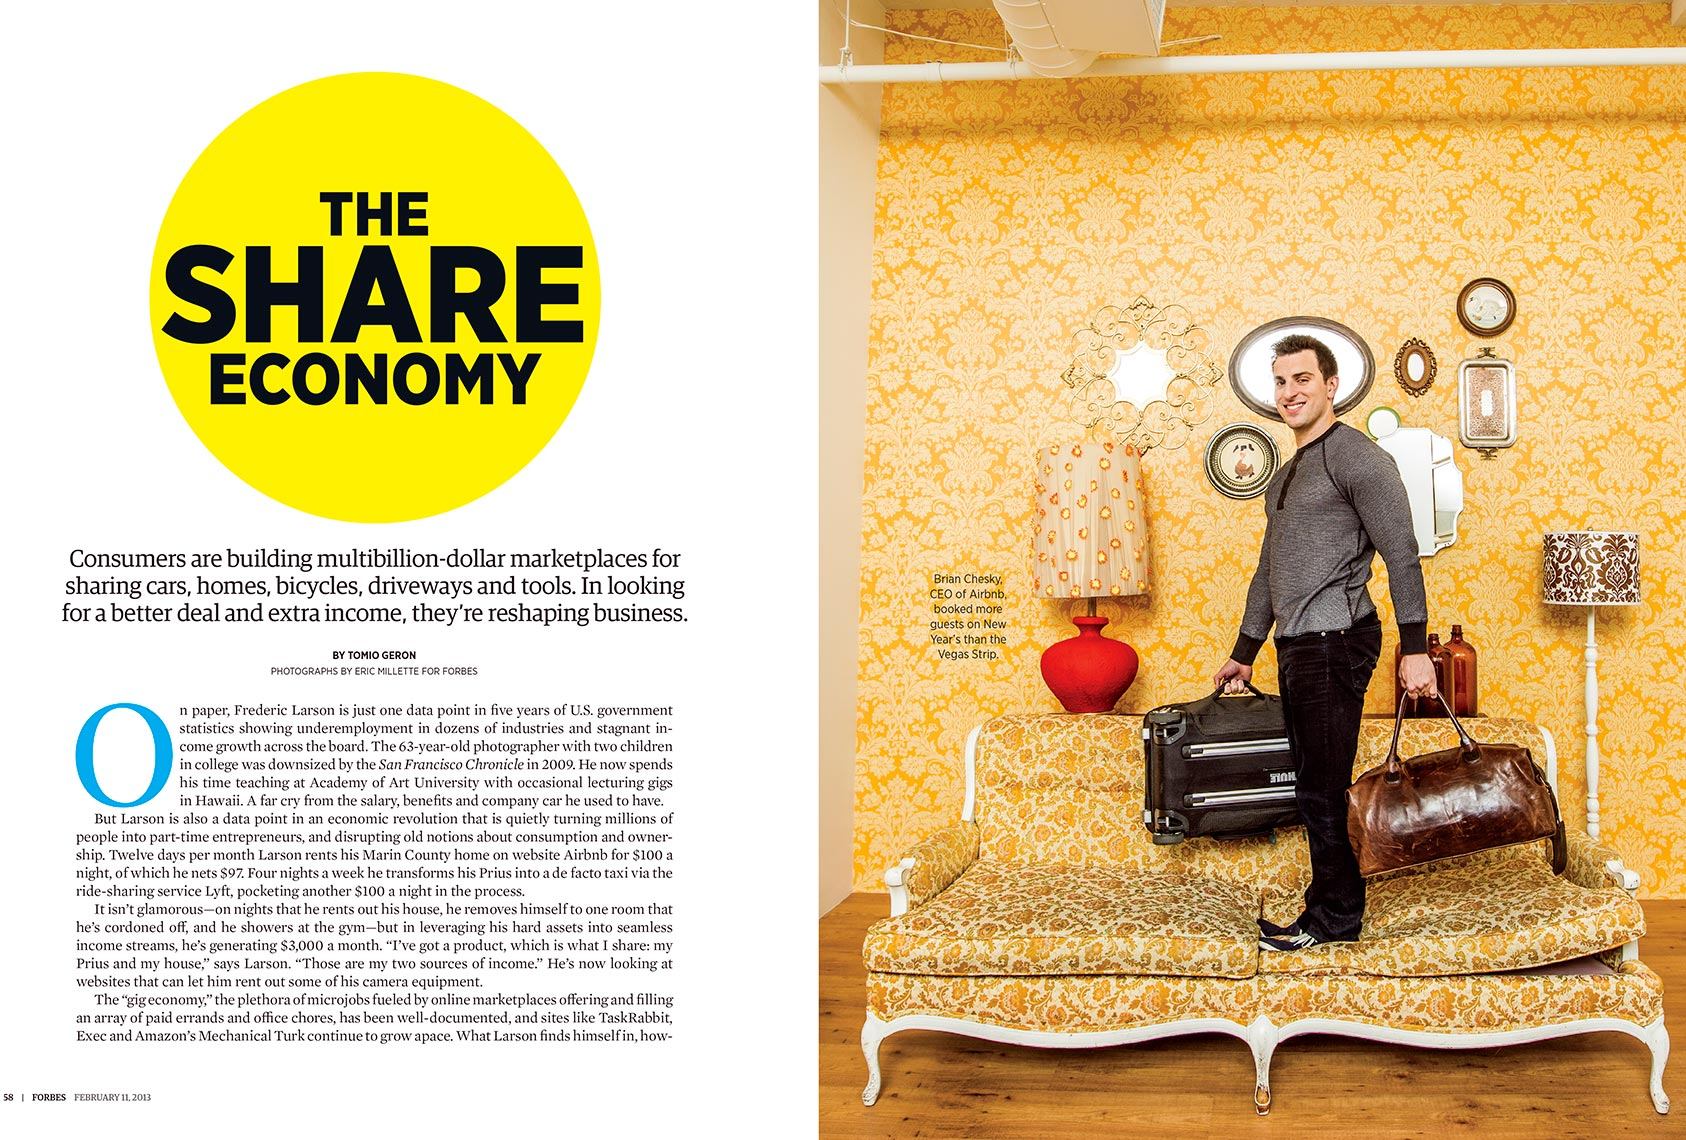 brian-chesky-airbnb-forbes-story.jpg